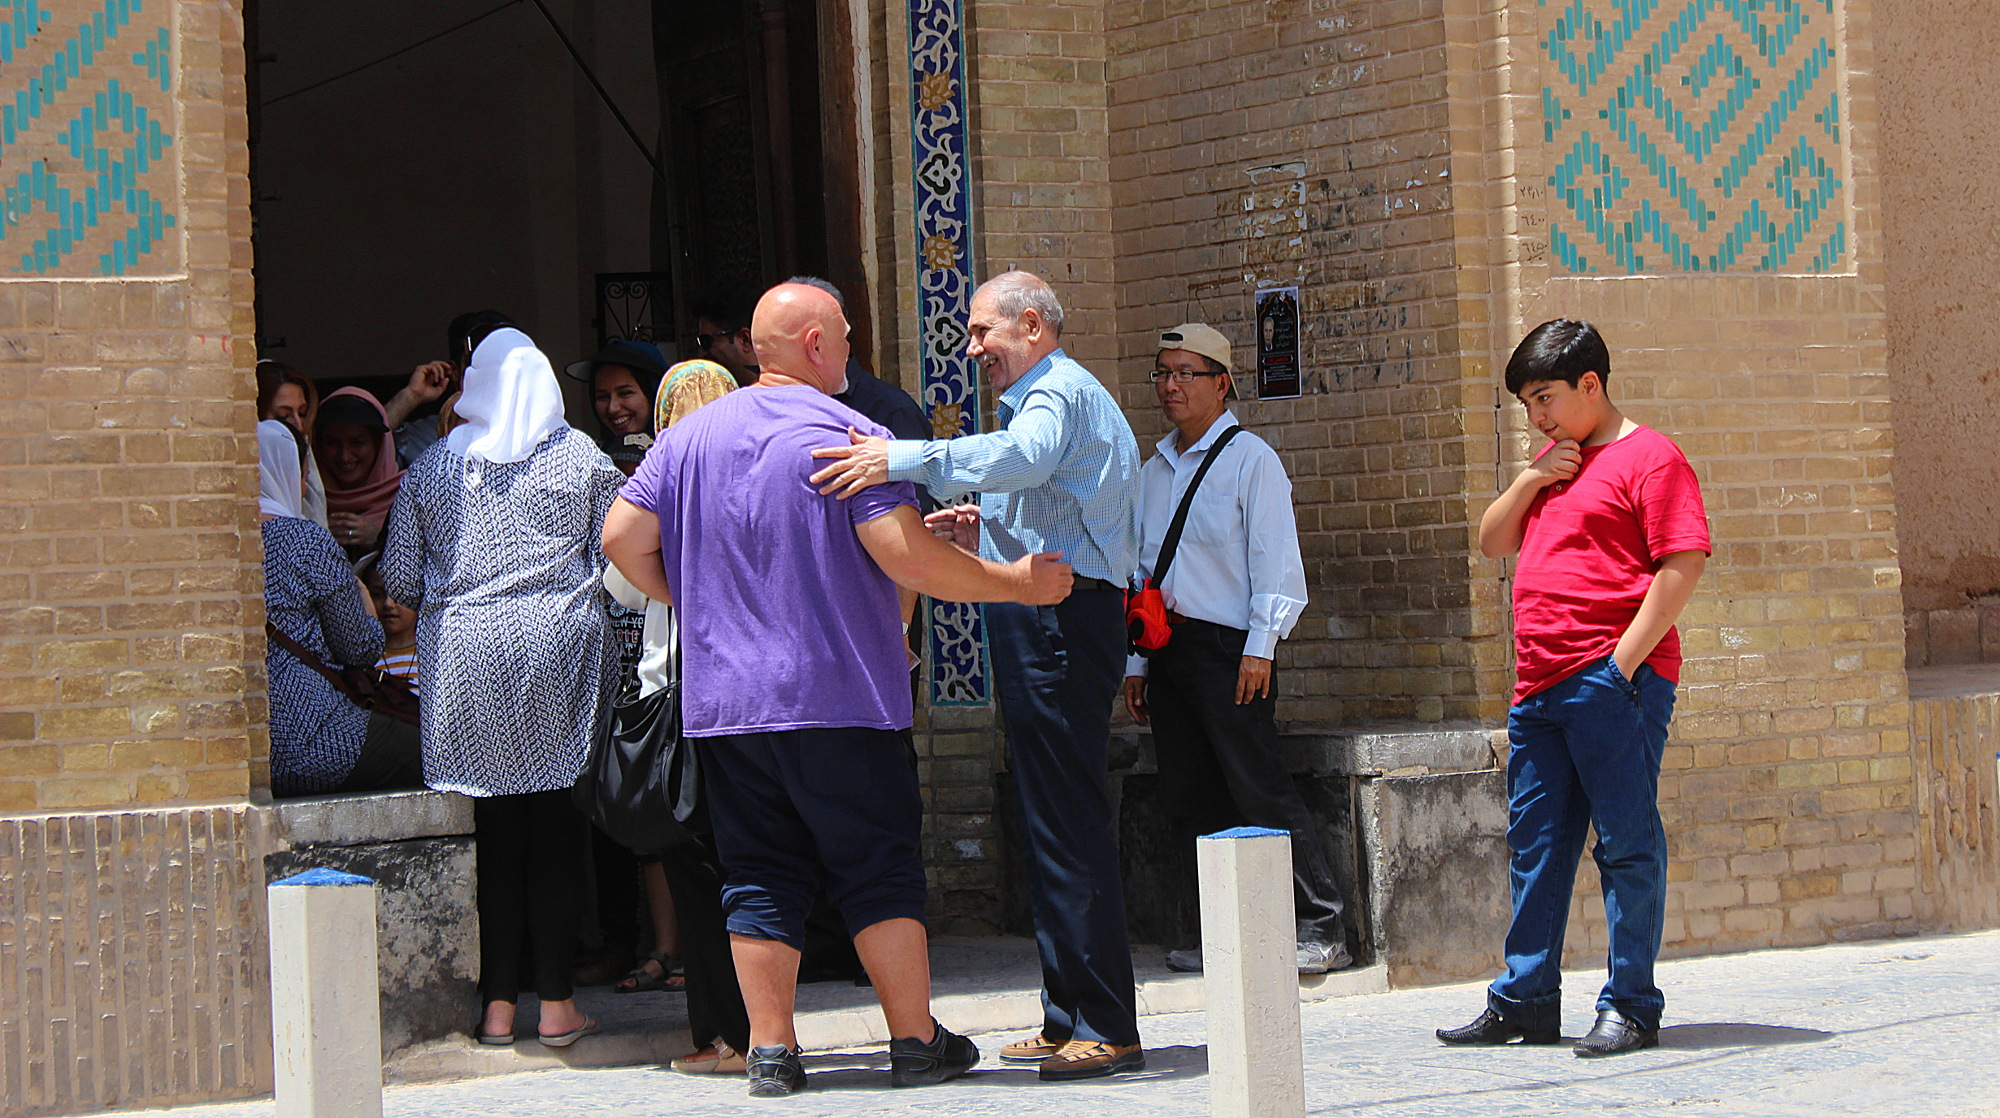 Local Iranian people interacting with tourists who are visiting Iran on a guided tour.